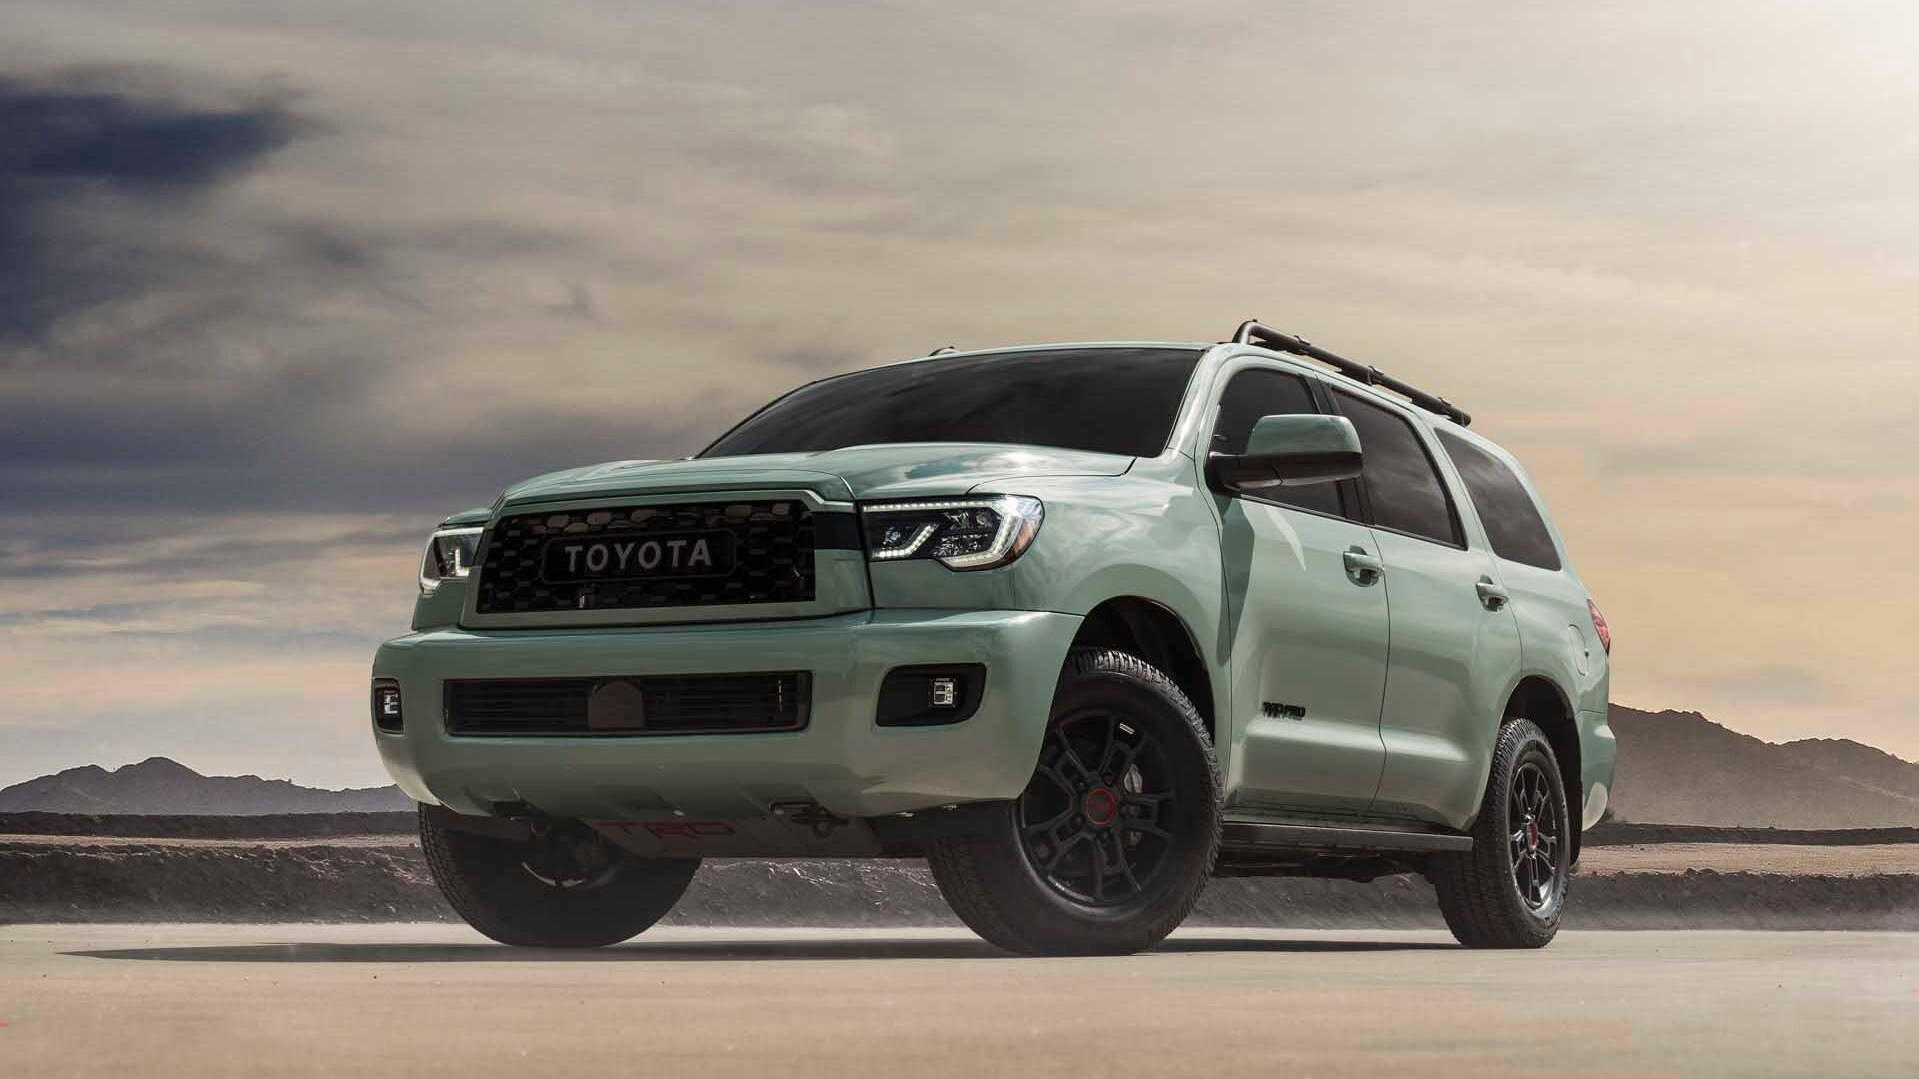 a 2021 toyota sequoia trd pro in Lunar rock in a pale desert showing off its wide, rugged stance.